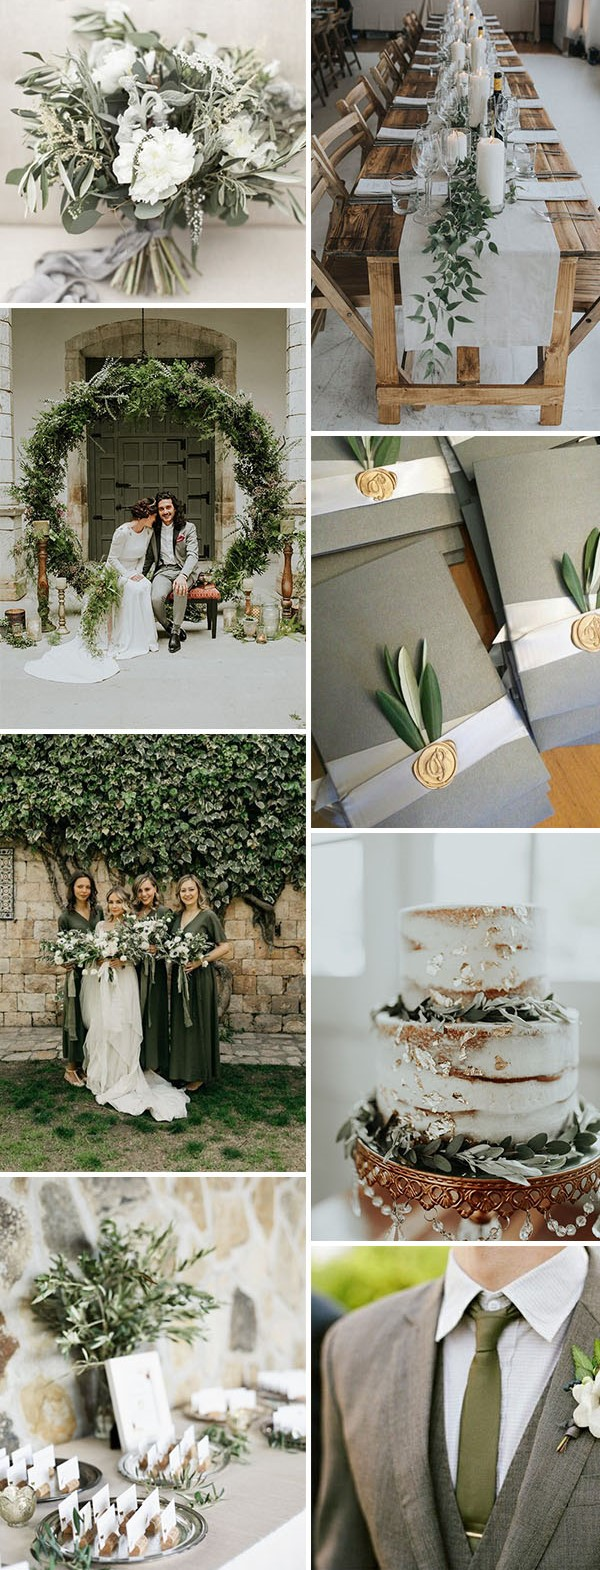 Olive-green-moody-wedding-color-palete-ideas-1.jpg